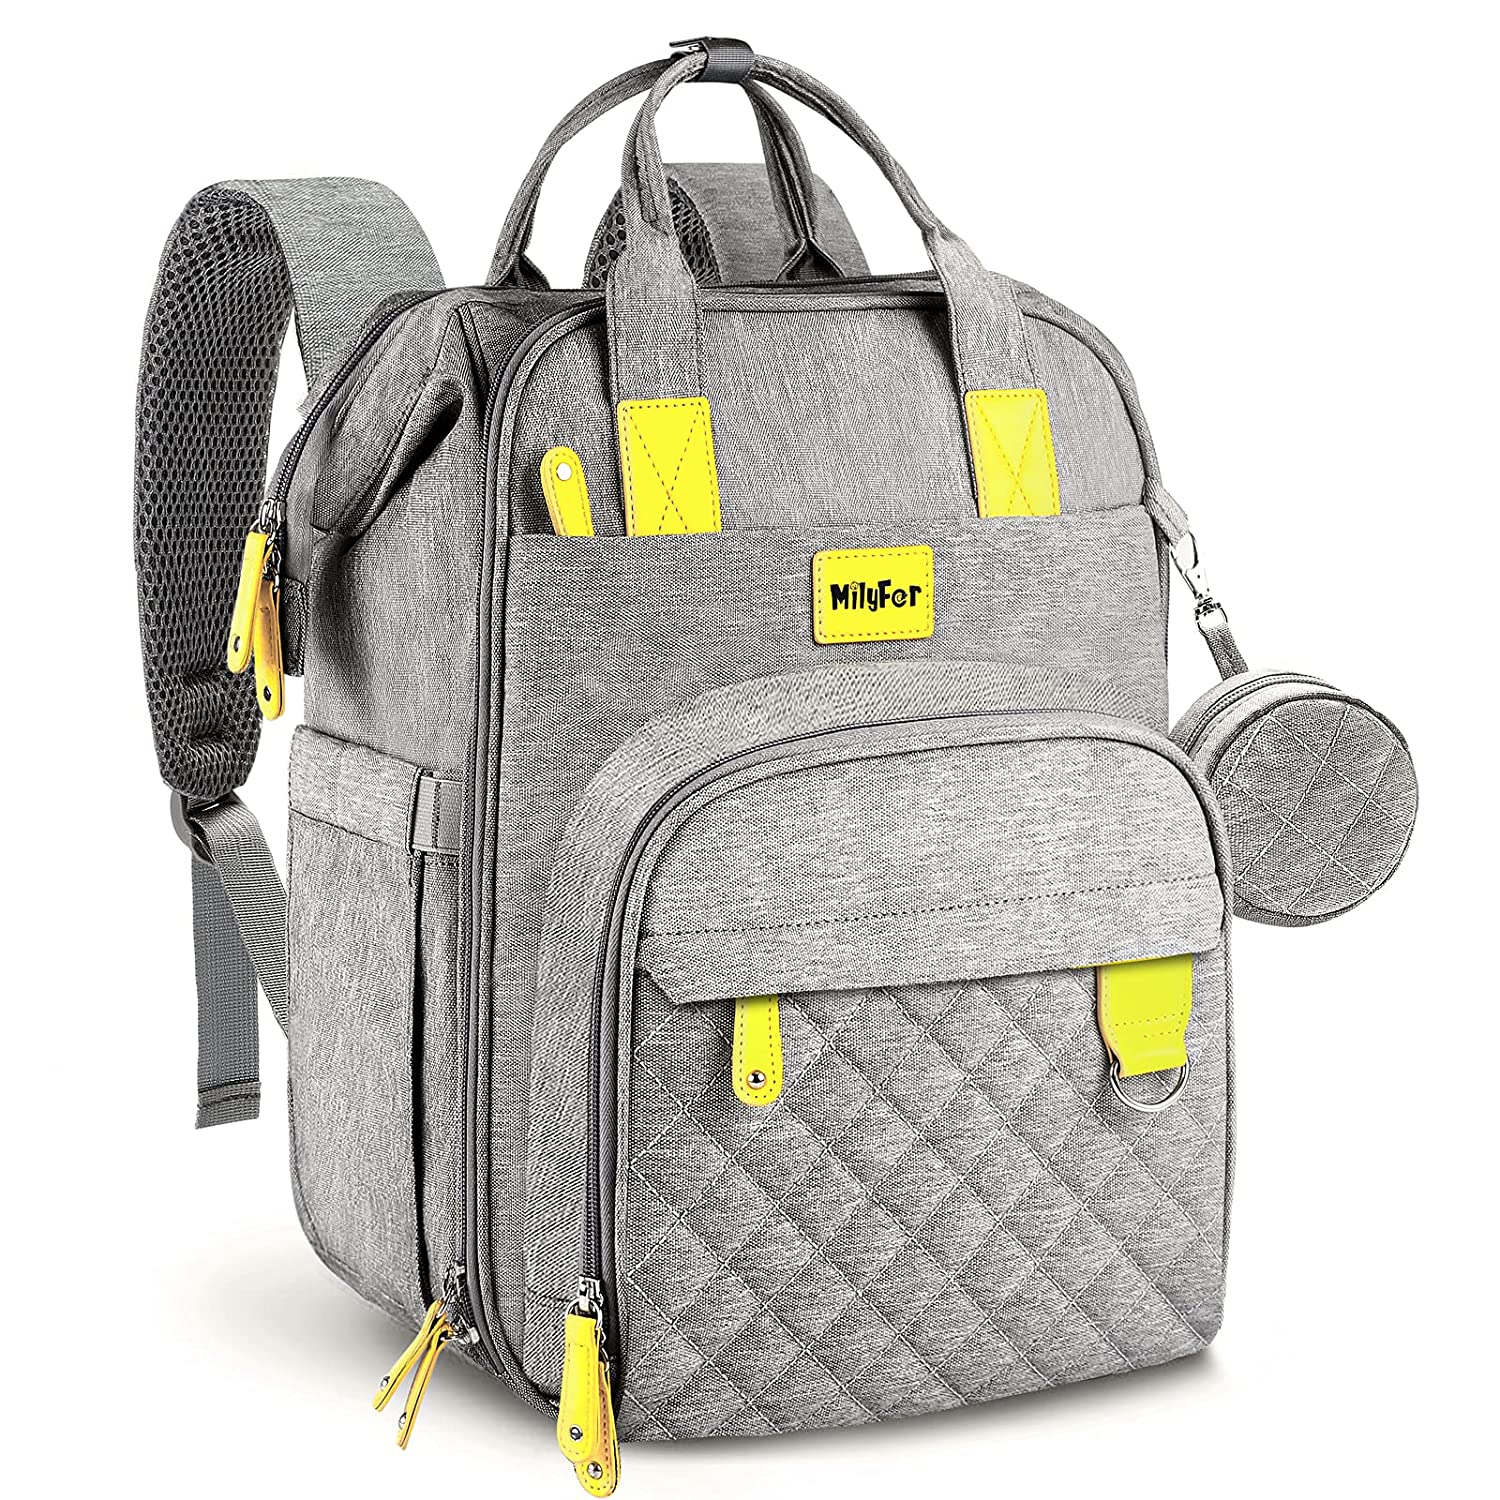 Diaper Bag Backpack, MILYFER Large Baby Nappy Changing Bags for Boys Girls, Waterproof Travel Bag Backpack with Changing Pad, Insulated Pockets, Stroller Straps and Pacifier Case, Gray